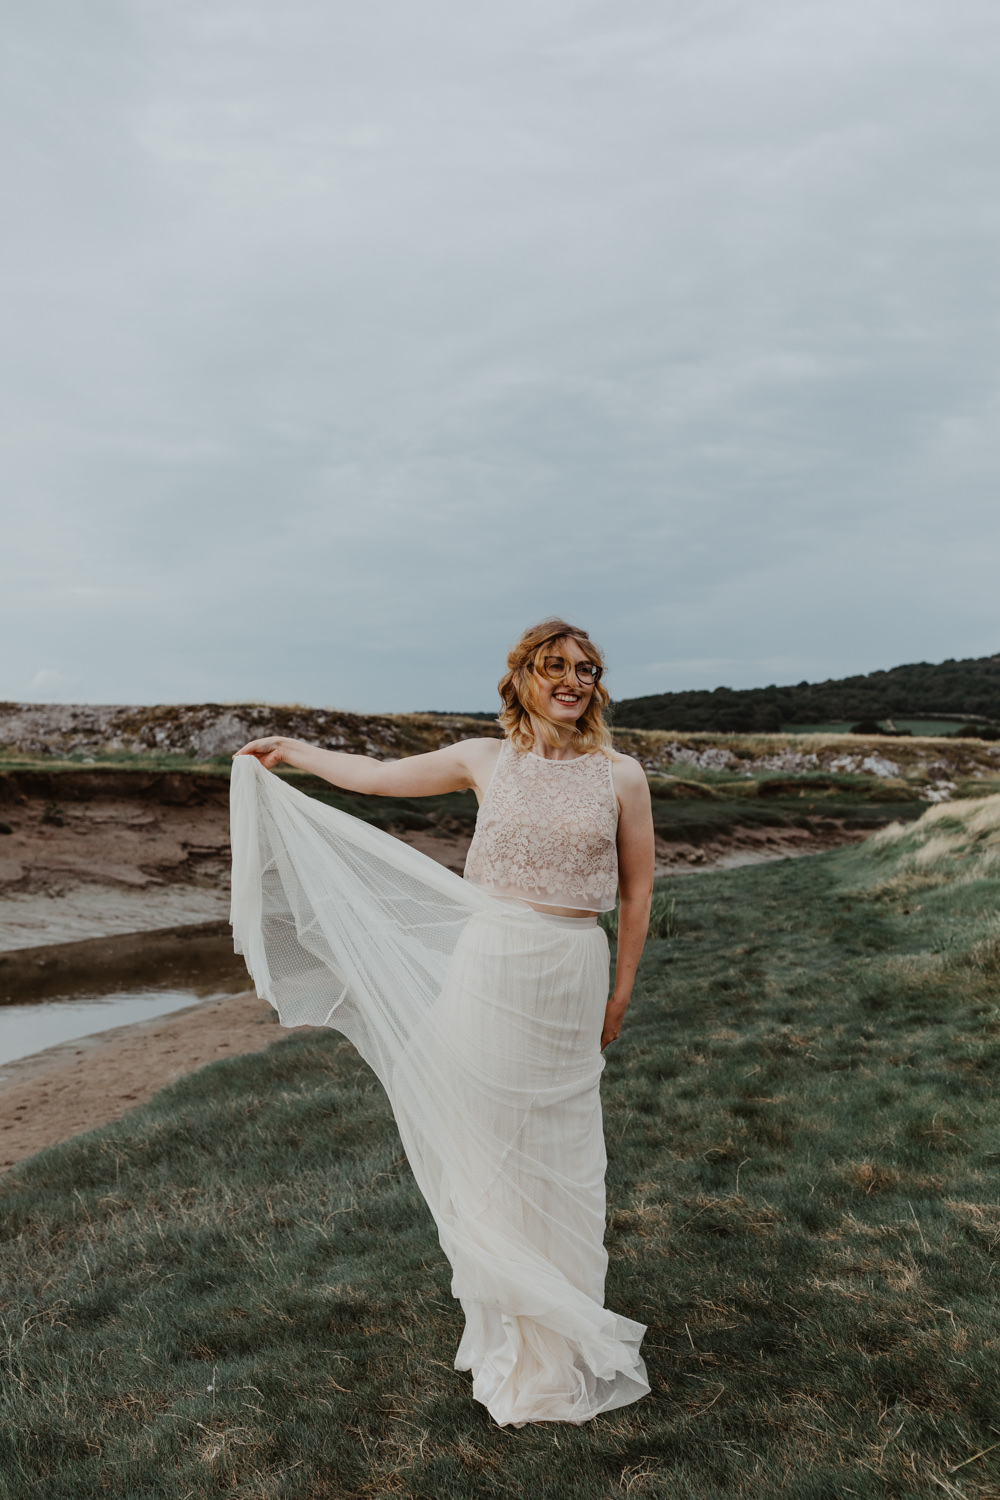 Dress Gown Bride Bridal Tulle Skirt Crop Top Lace Bird Hide Wedding Stevie Jay Photography